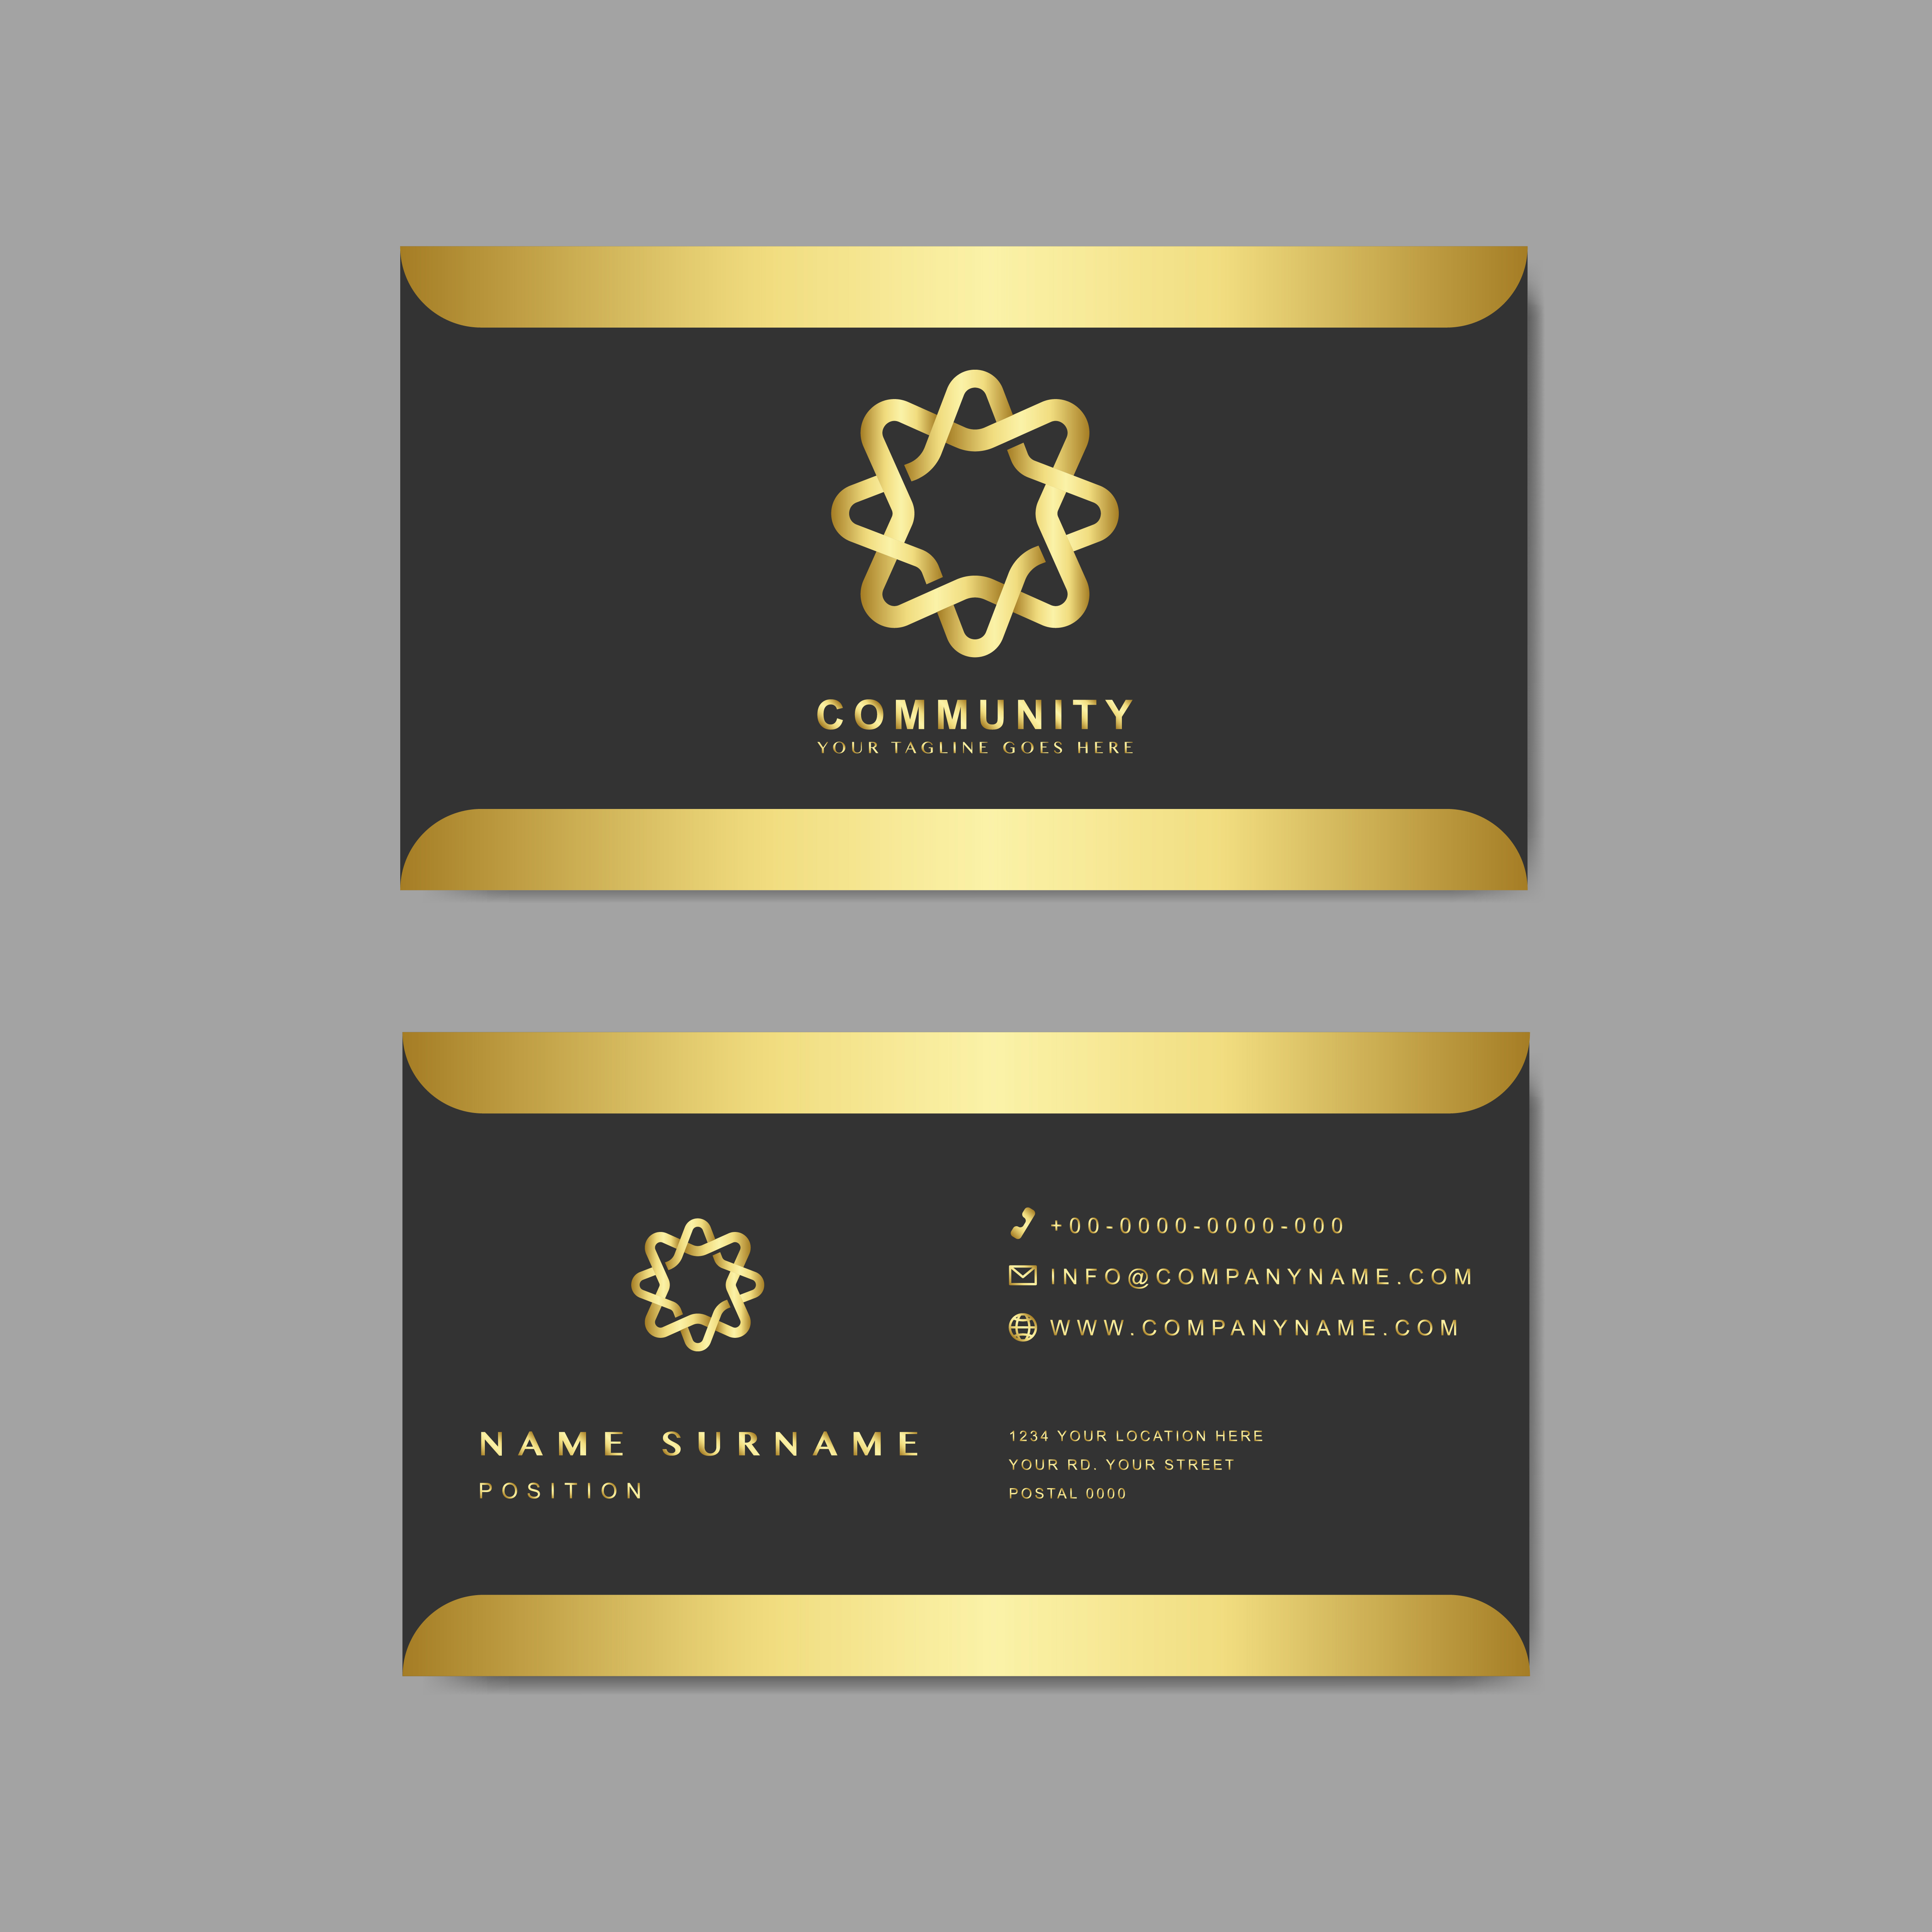 business card sample design template  download free